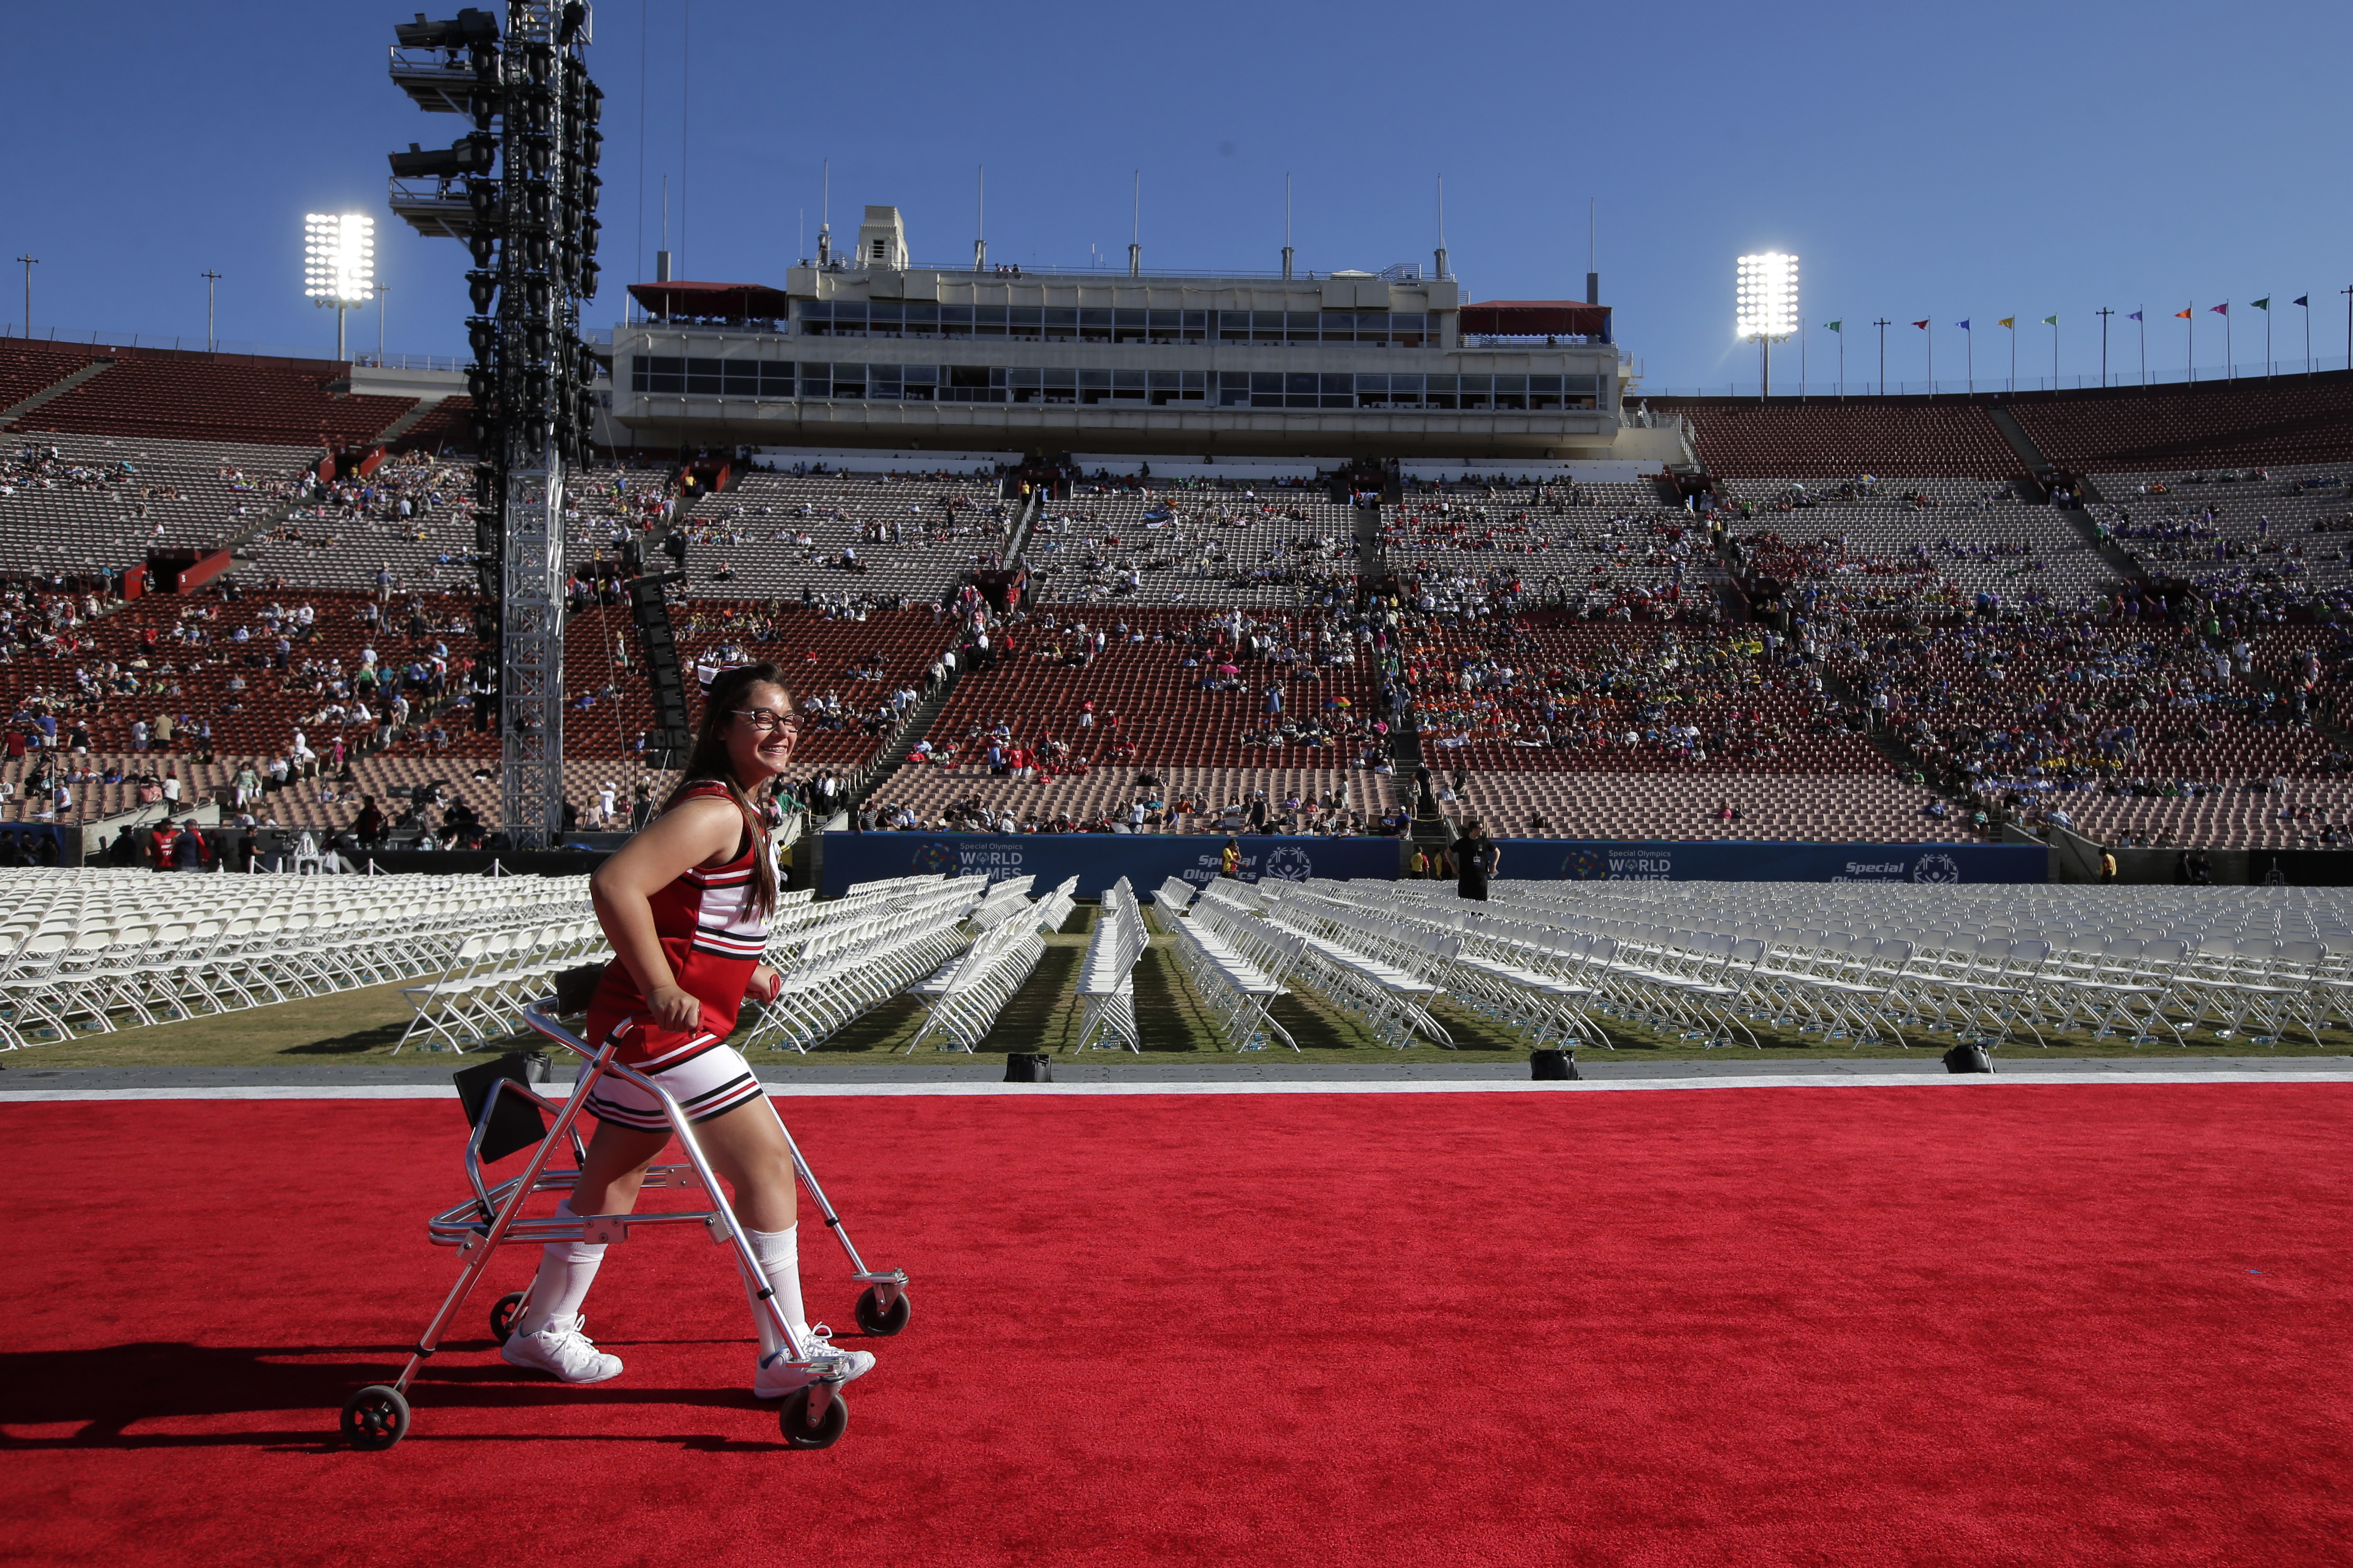 Cheerleader Tiana DiMassa, 14, of Garden Grove, Calif., leaves the stadium after her pre-show performance at the opening ceremony of the Special Olympics World Games, Saturday, July 25, 2015, in Los Angeles. Some 6,500 athletes from 165 countries u0097 the most to converge on Los Angeles since the 1984 Summer Olympics u0097 have poured into town this week to hit tennis balls, kick soccer balls, swim laps, ride horses, lift weights, even run a triathlon. Photo: AP